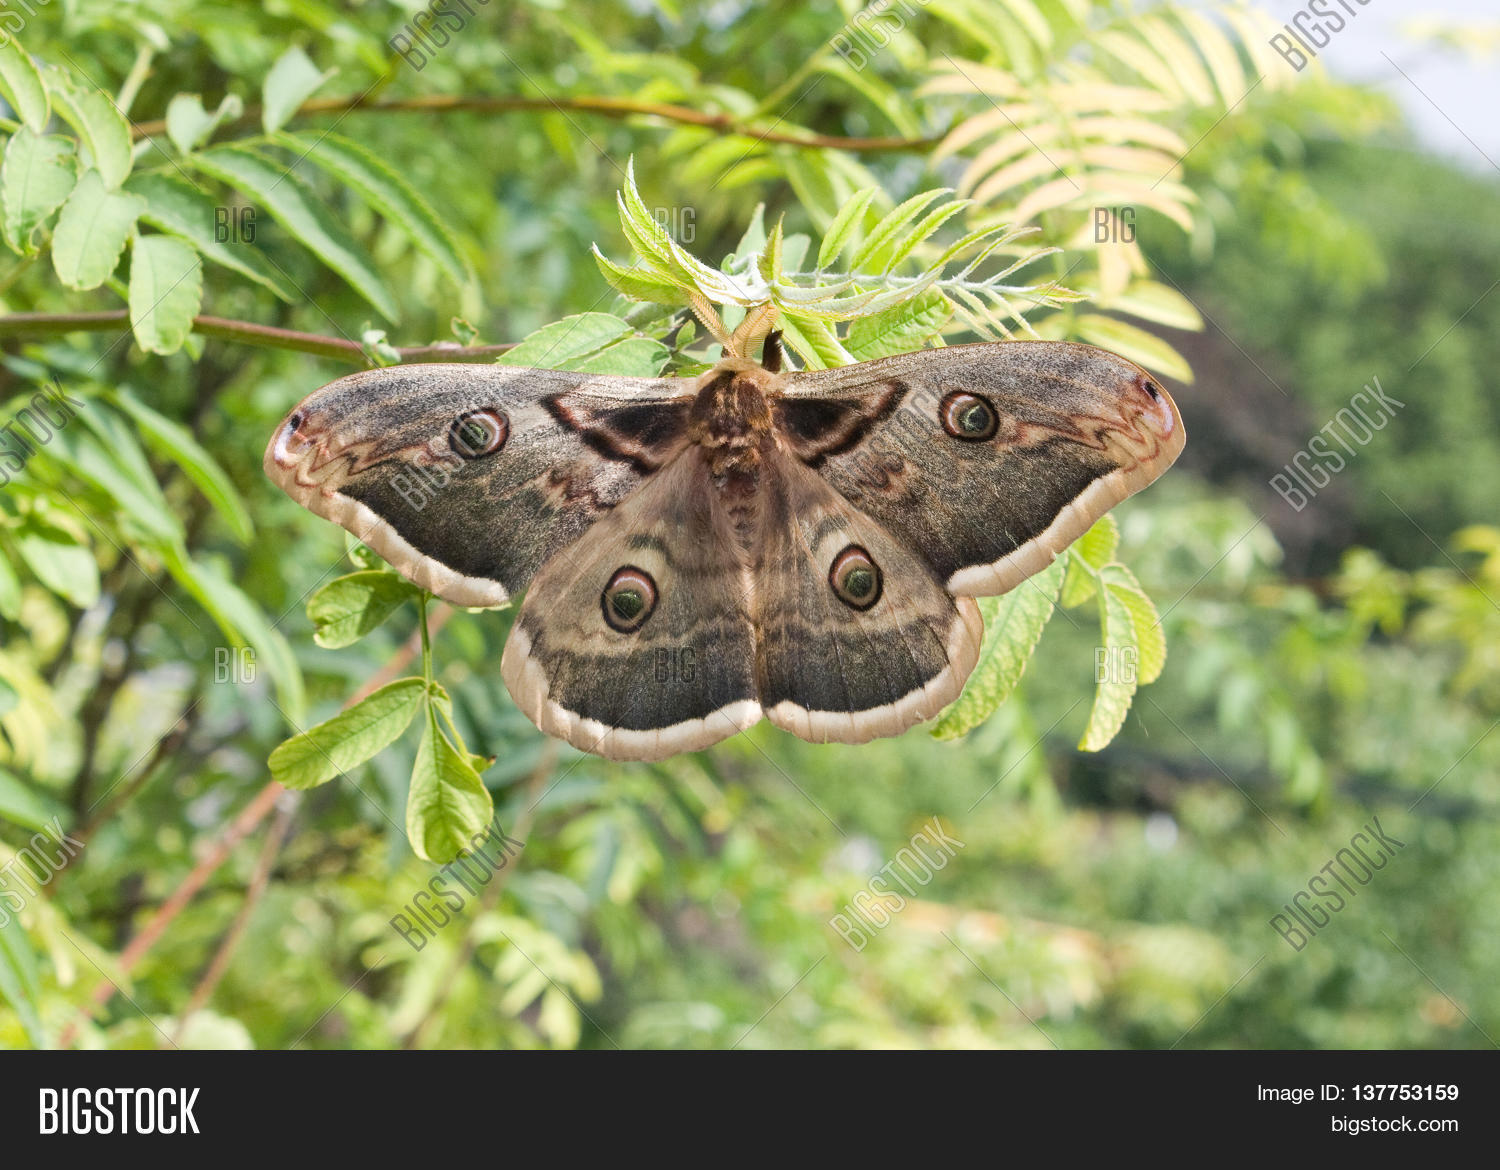 Saturnia pyri, the Giant Peacock Moth, is a Saturniid moth which is native to Europe.